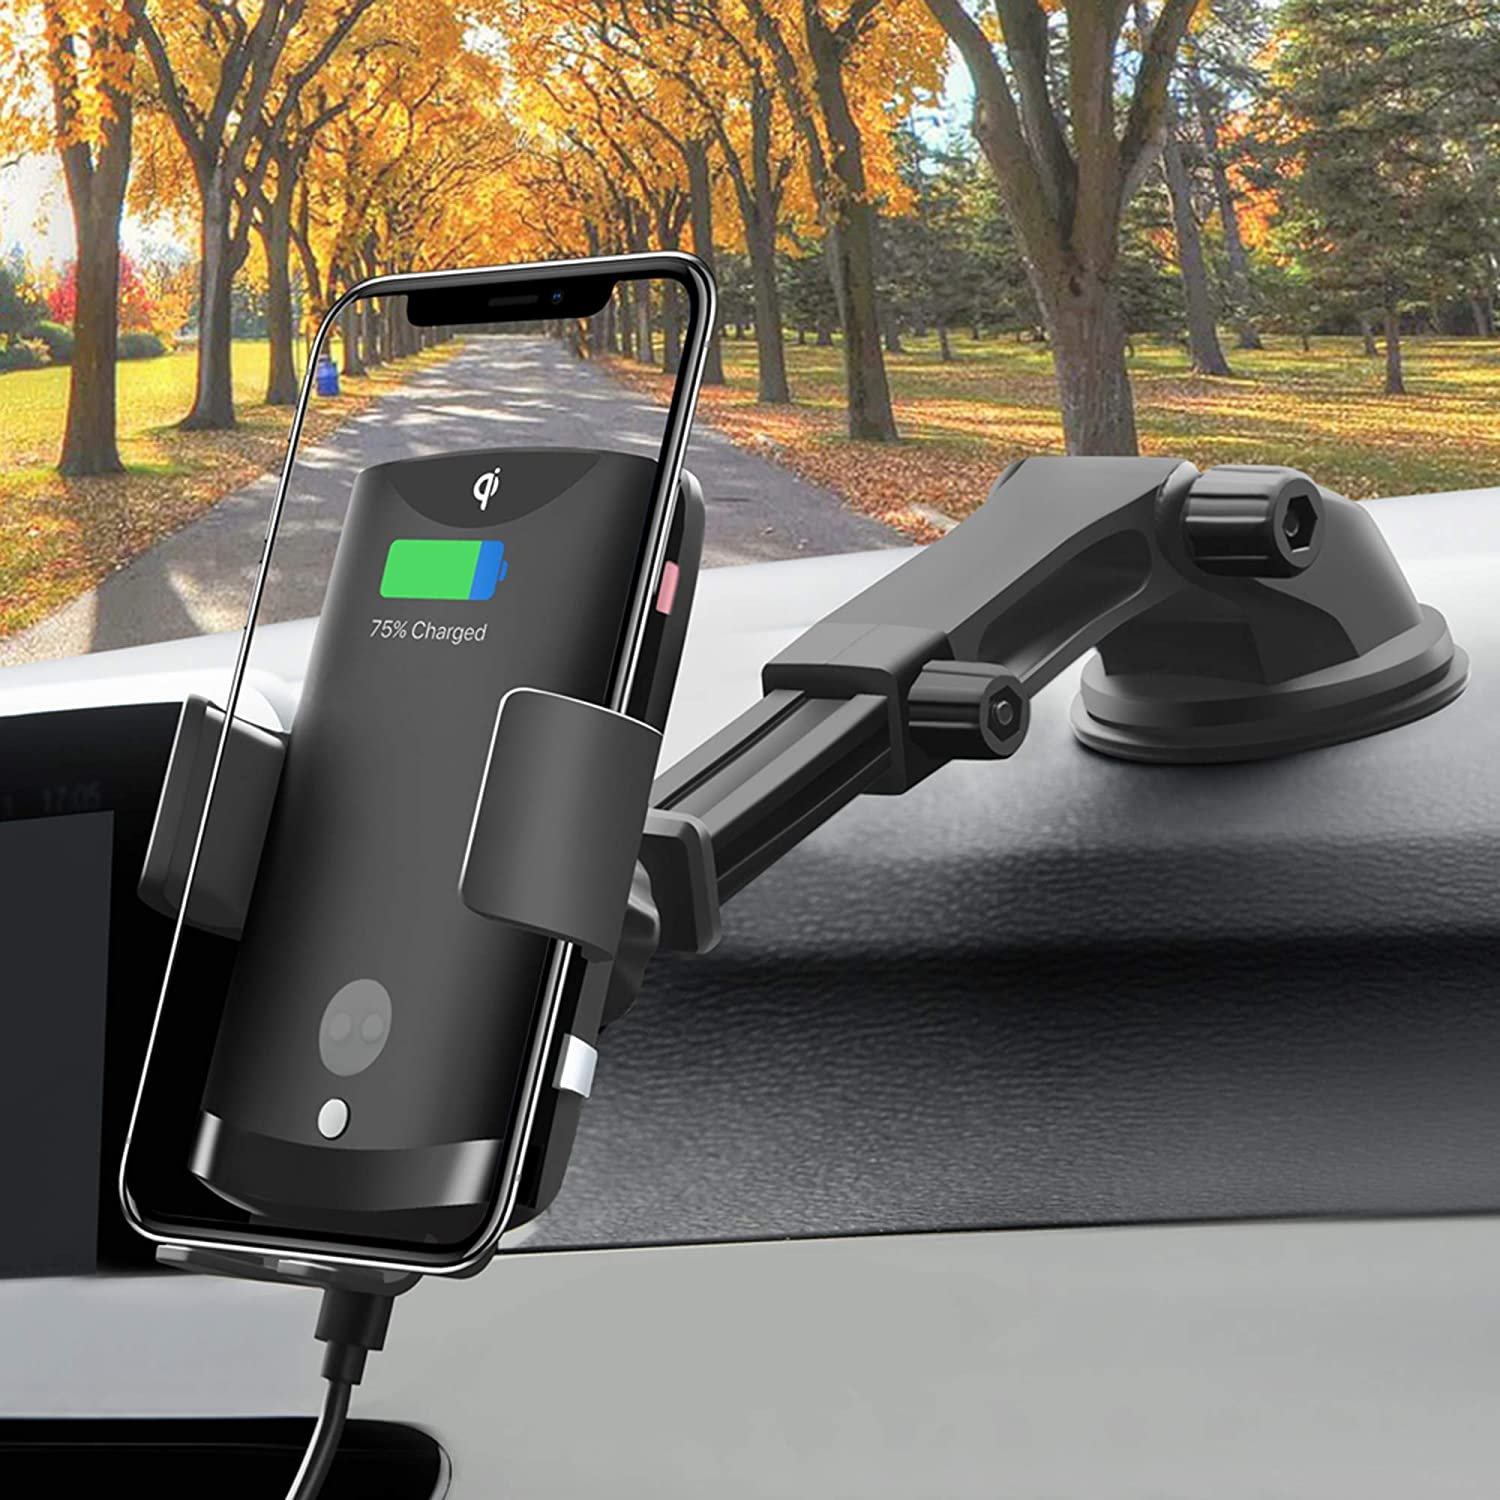 Swgrdin Infrared Fast QC 3.0 10w//7.5w Qi Car Charger Mount Samsung S6//S7//S8//S9//S10//Note LG G6//G7//V30//V35//V50 Auto Clamping Wireless Charger Car Air Vent Phone Holder for iPhone 8//X//11 Pro Max